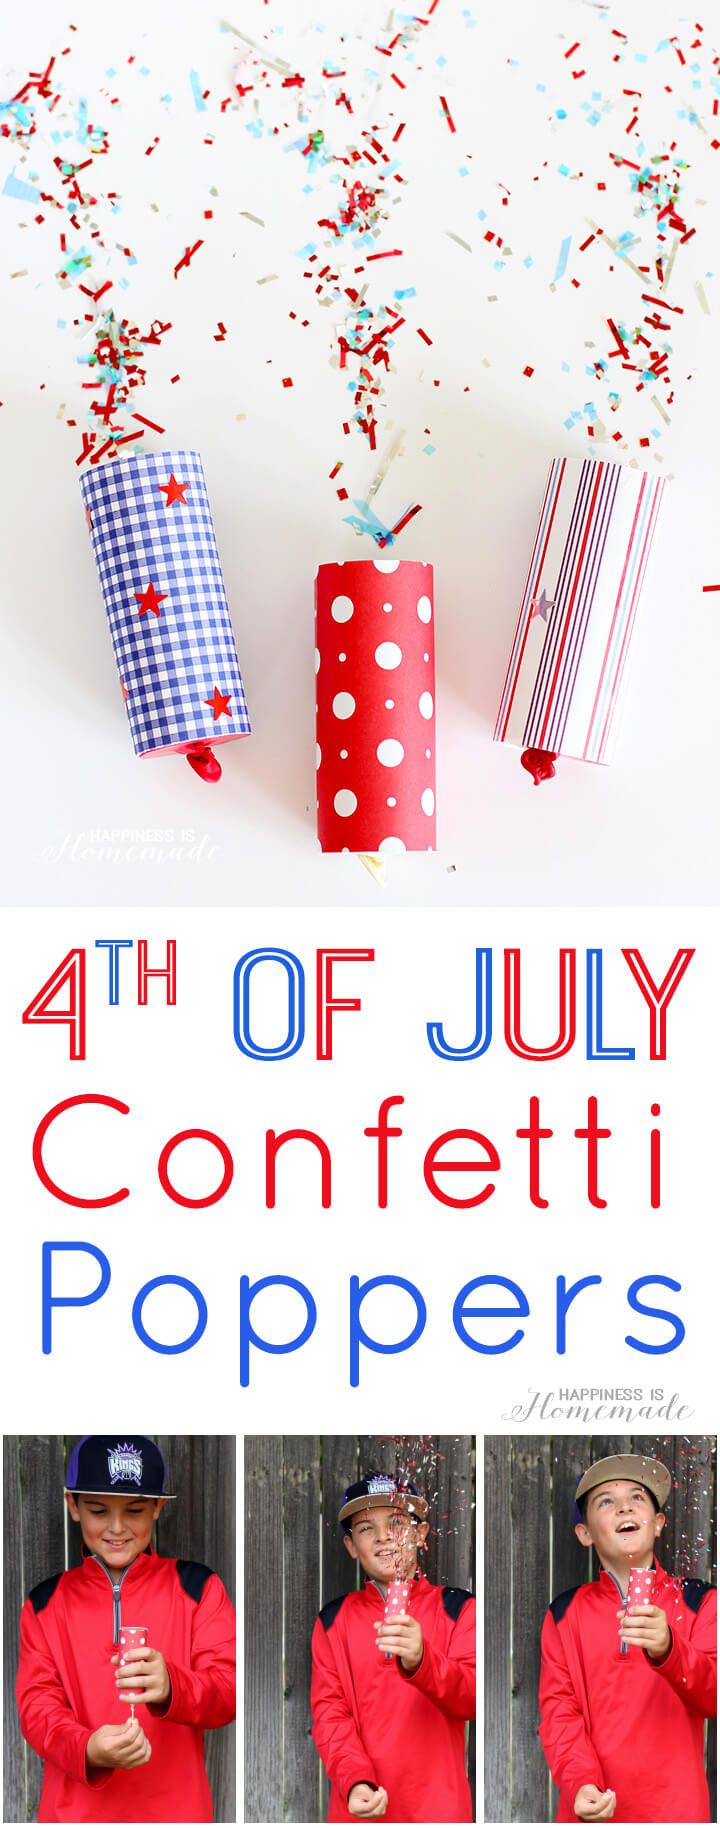 How to Make Confetti Poppers for 4th of July